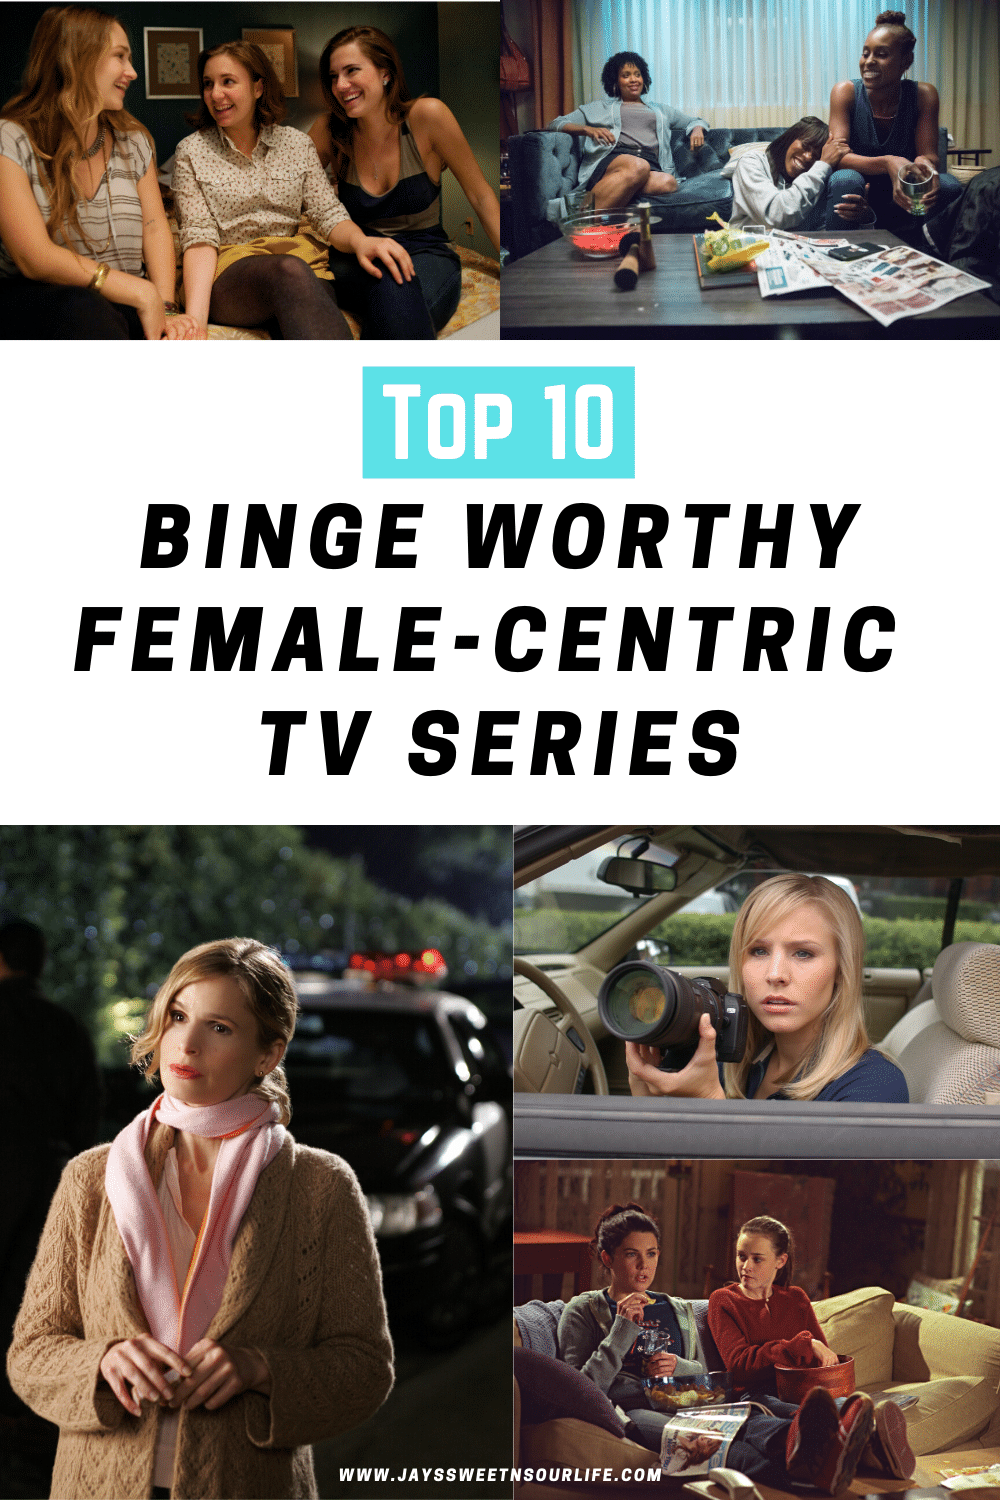 Top 10 Binge Worthy Female-Centric TV Series. Instead of getting down and out about having to shelter in place away from your girl squad, have a girls night in and get lost in these Top 10 binge worthy female-centric TV series that have strong female leads and will give you the girl-power you have been missing!